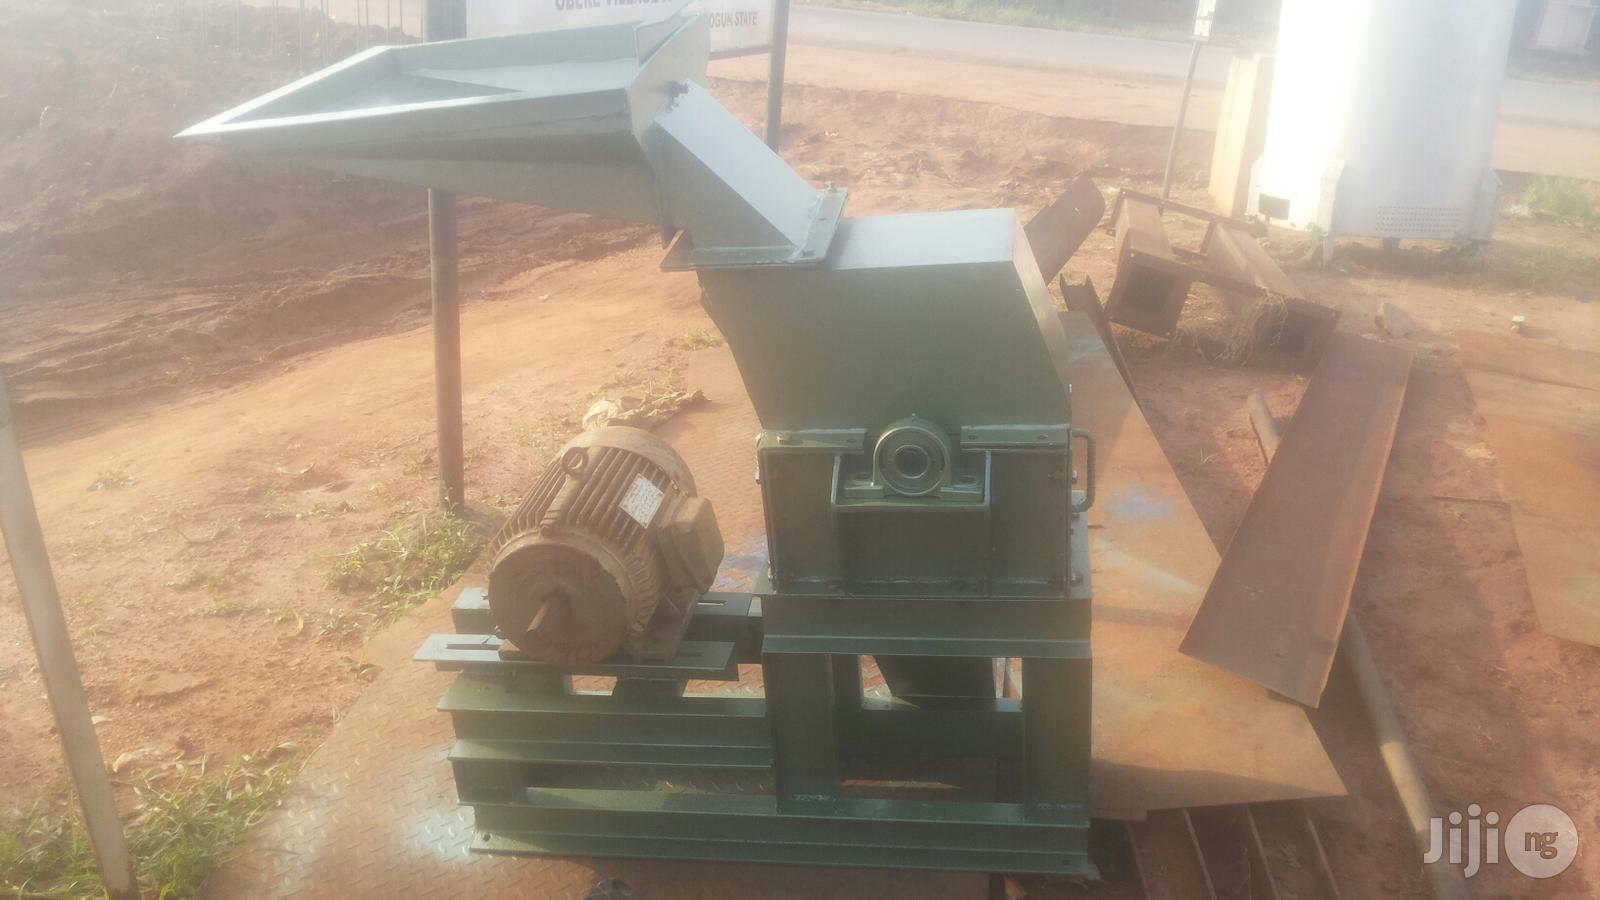 Hammer Mill Or Crusher | Farm Machinery & Equipment for sale in Ado-Odo/Ota, Ogun State, Nigeria